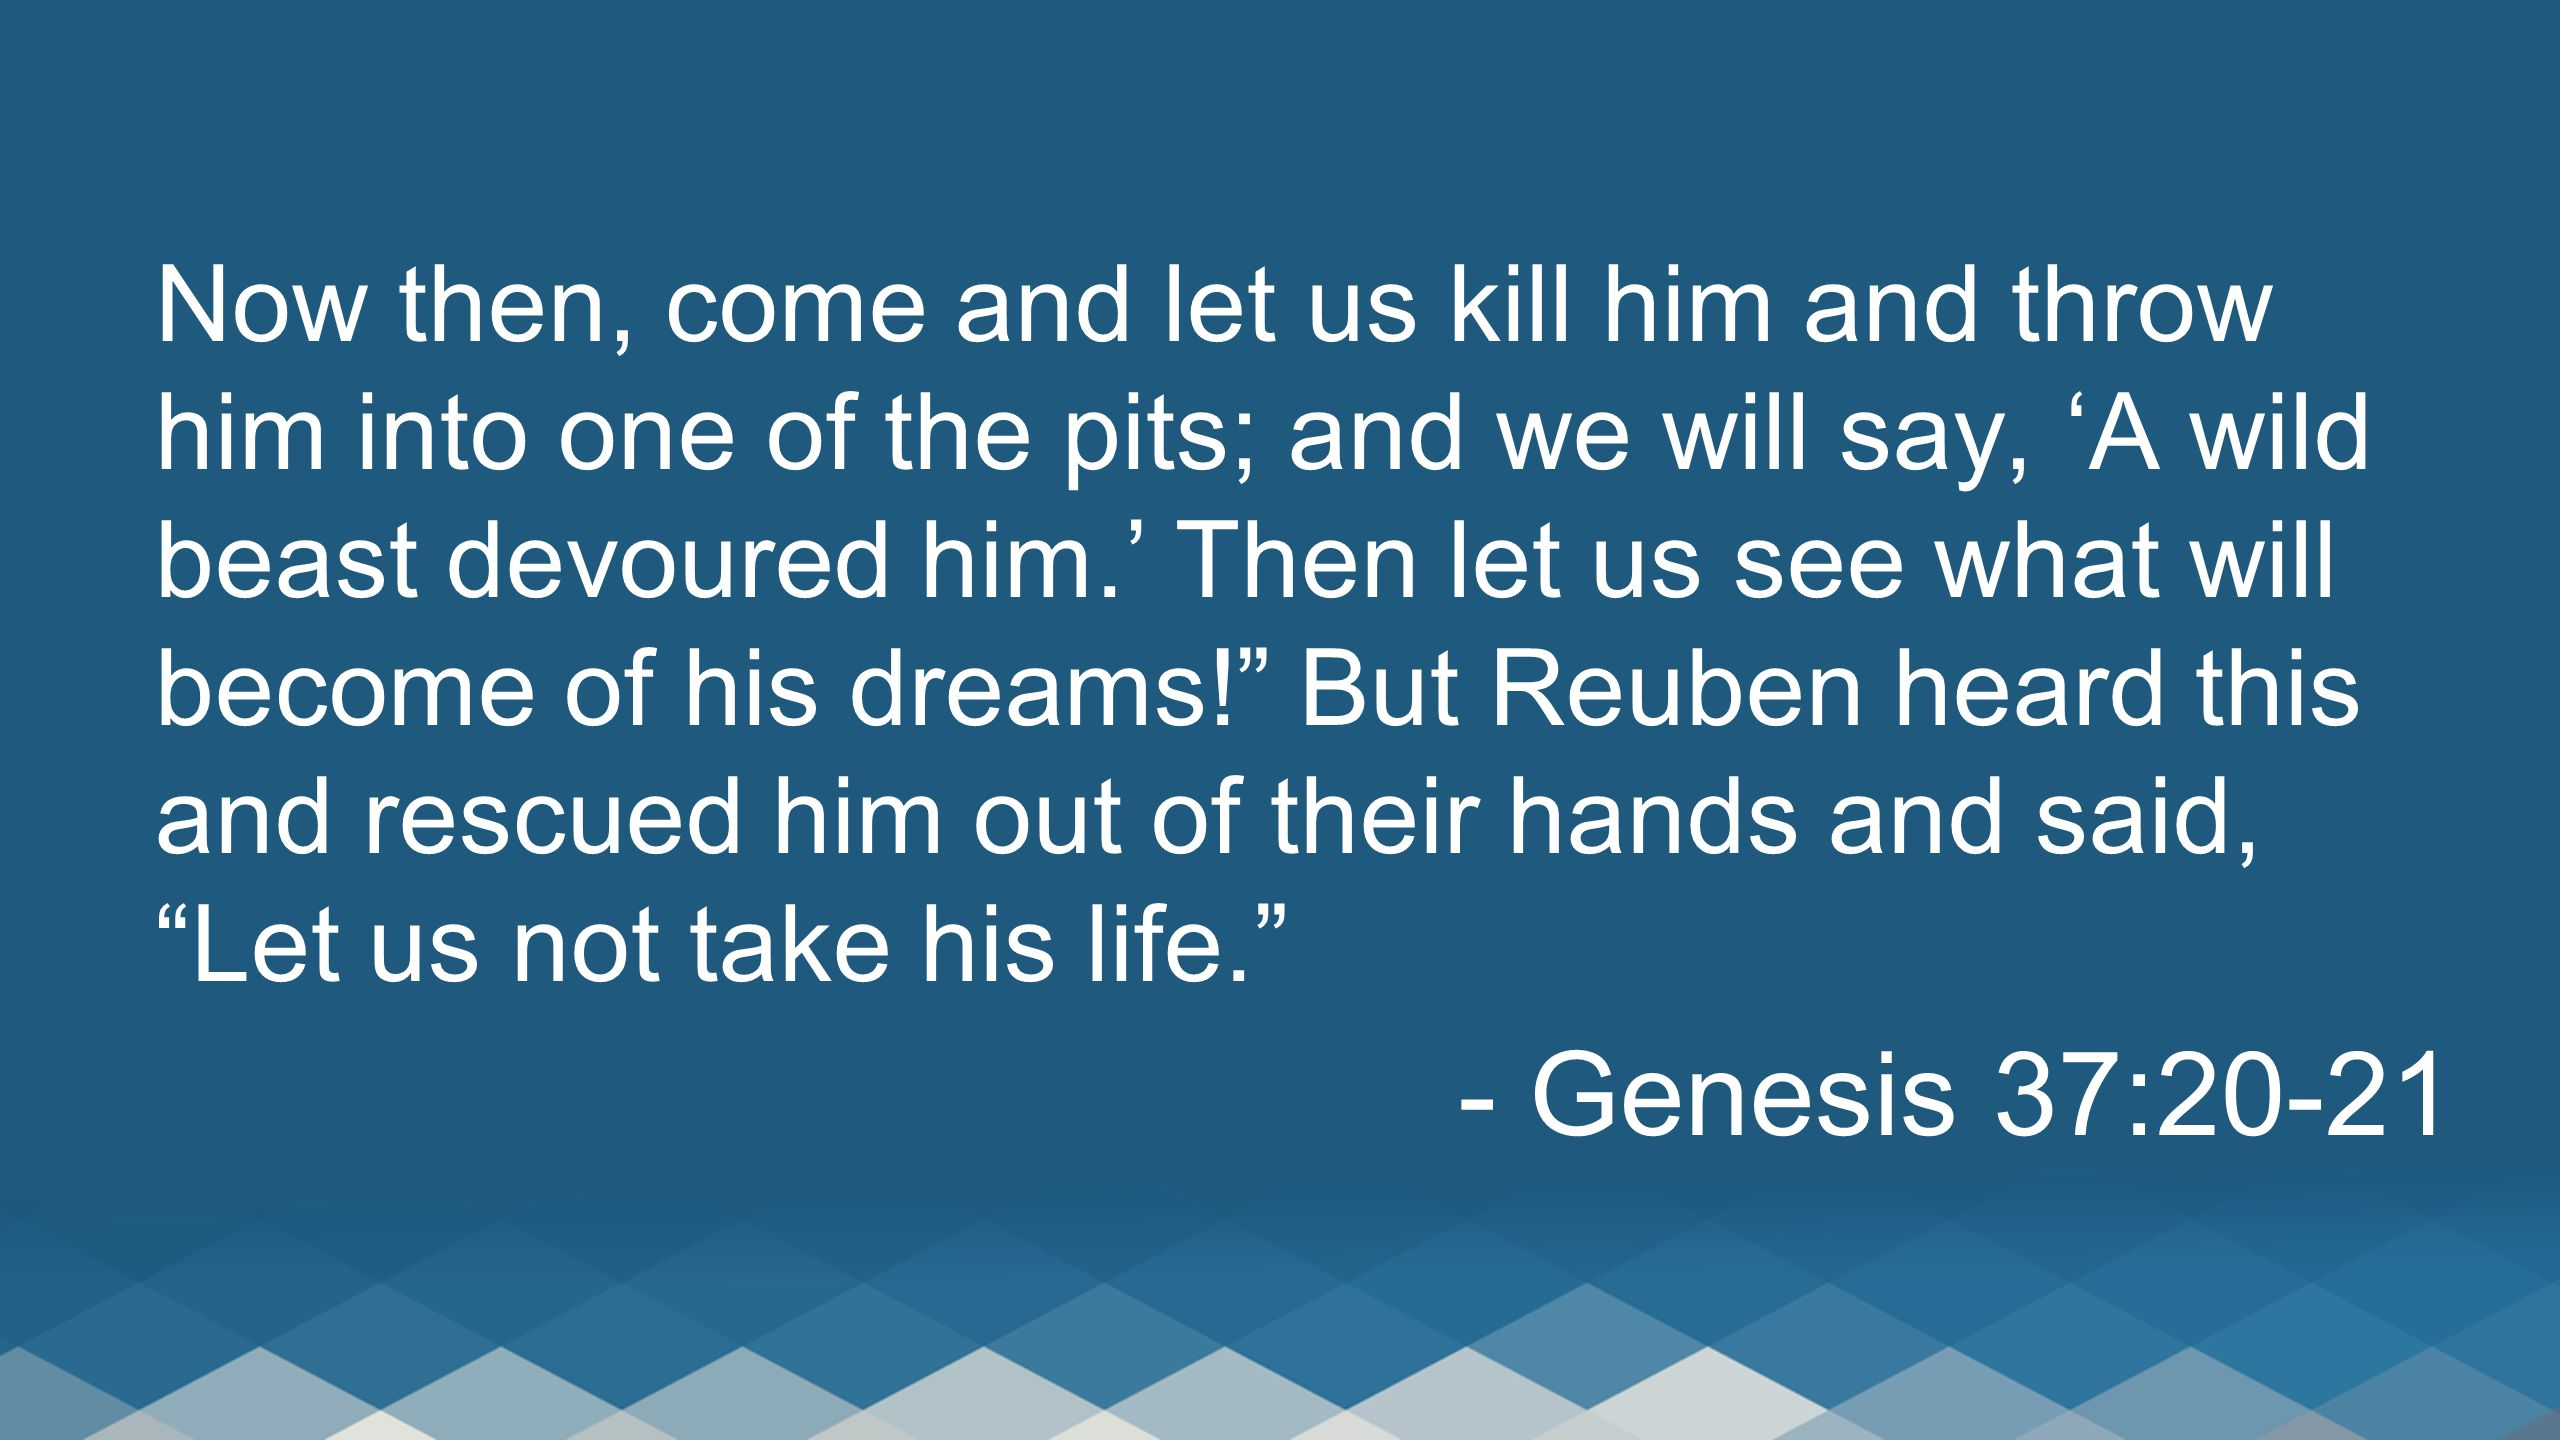 Now then, come and let us kill him and throw him into one of the pits; and we will say, 'A wild beast devoured him.' Then let us see what will become of his dreams! But Reuben heard this and rescued him out of their hands and said, Let us not take his life. - Genesis 37:20-21